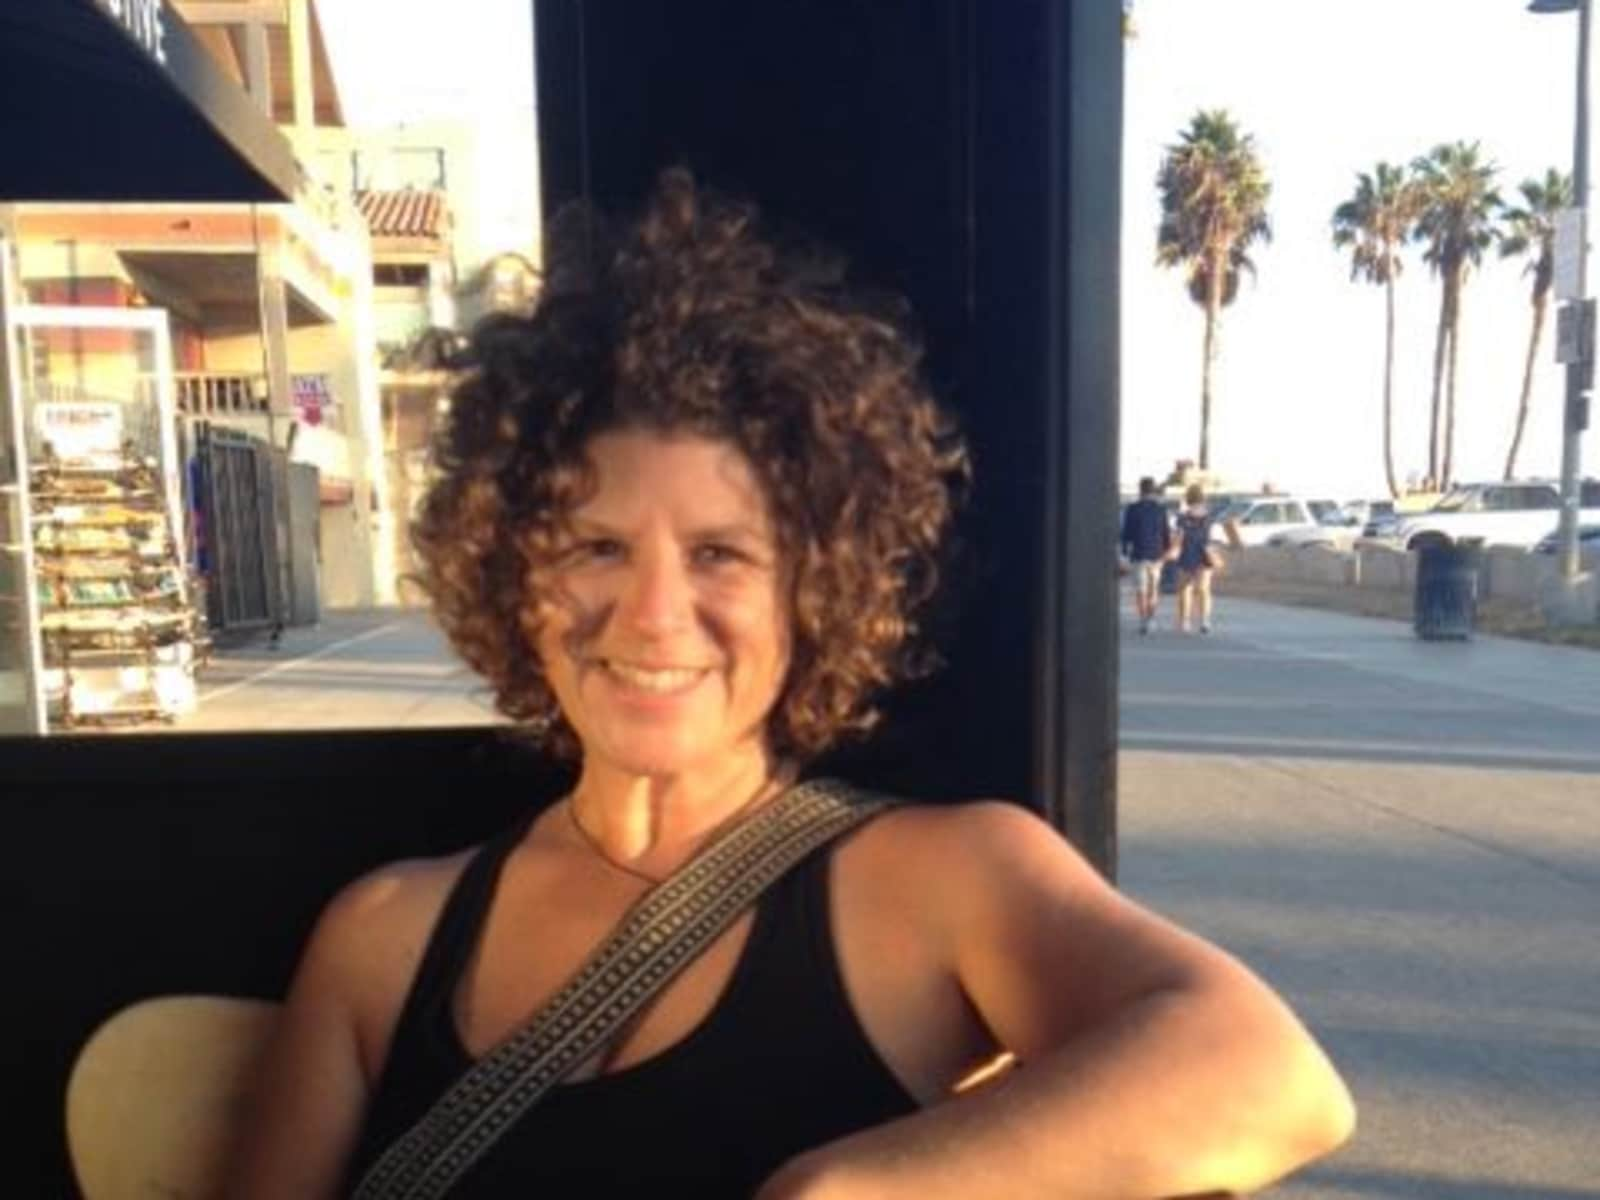 Gina from Los Angeles, California, United States